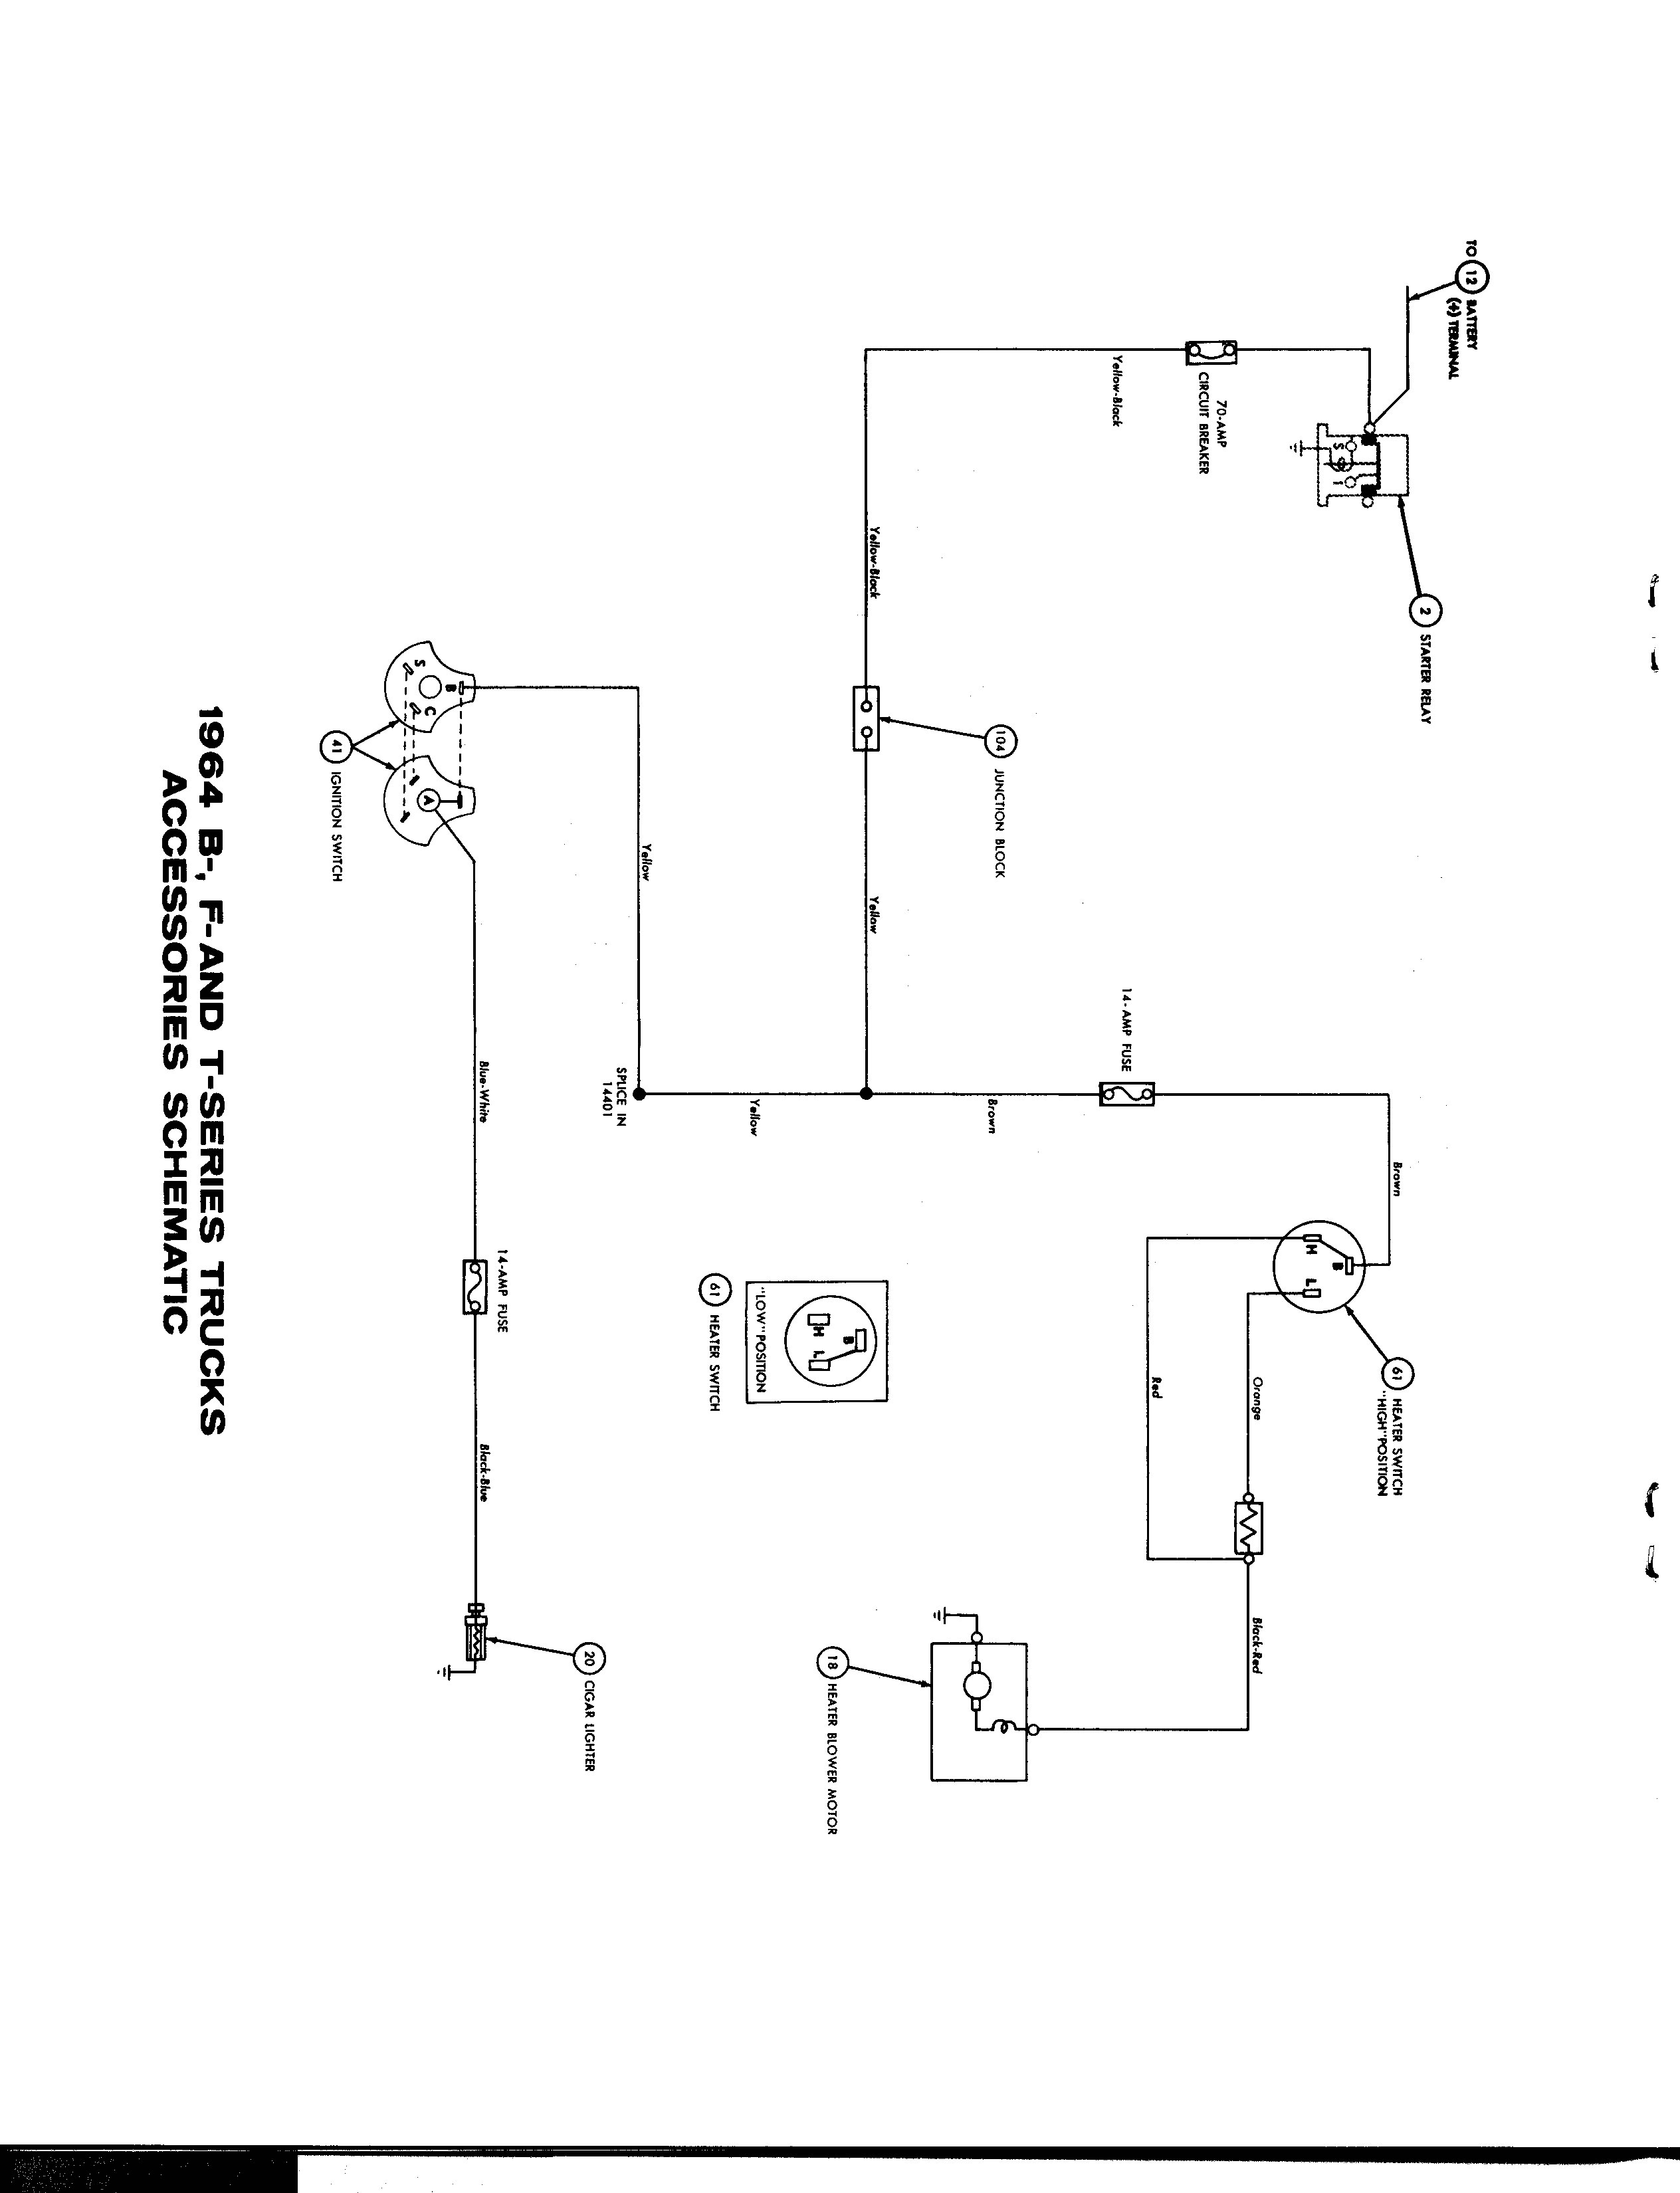 tags: #house for ethernet wiring#ethernet home network wiring diagram#home  network ethernet voip#ethernet wiring for your home#home wiring data# ethernet